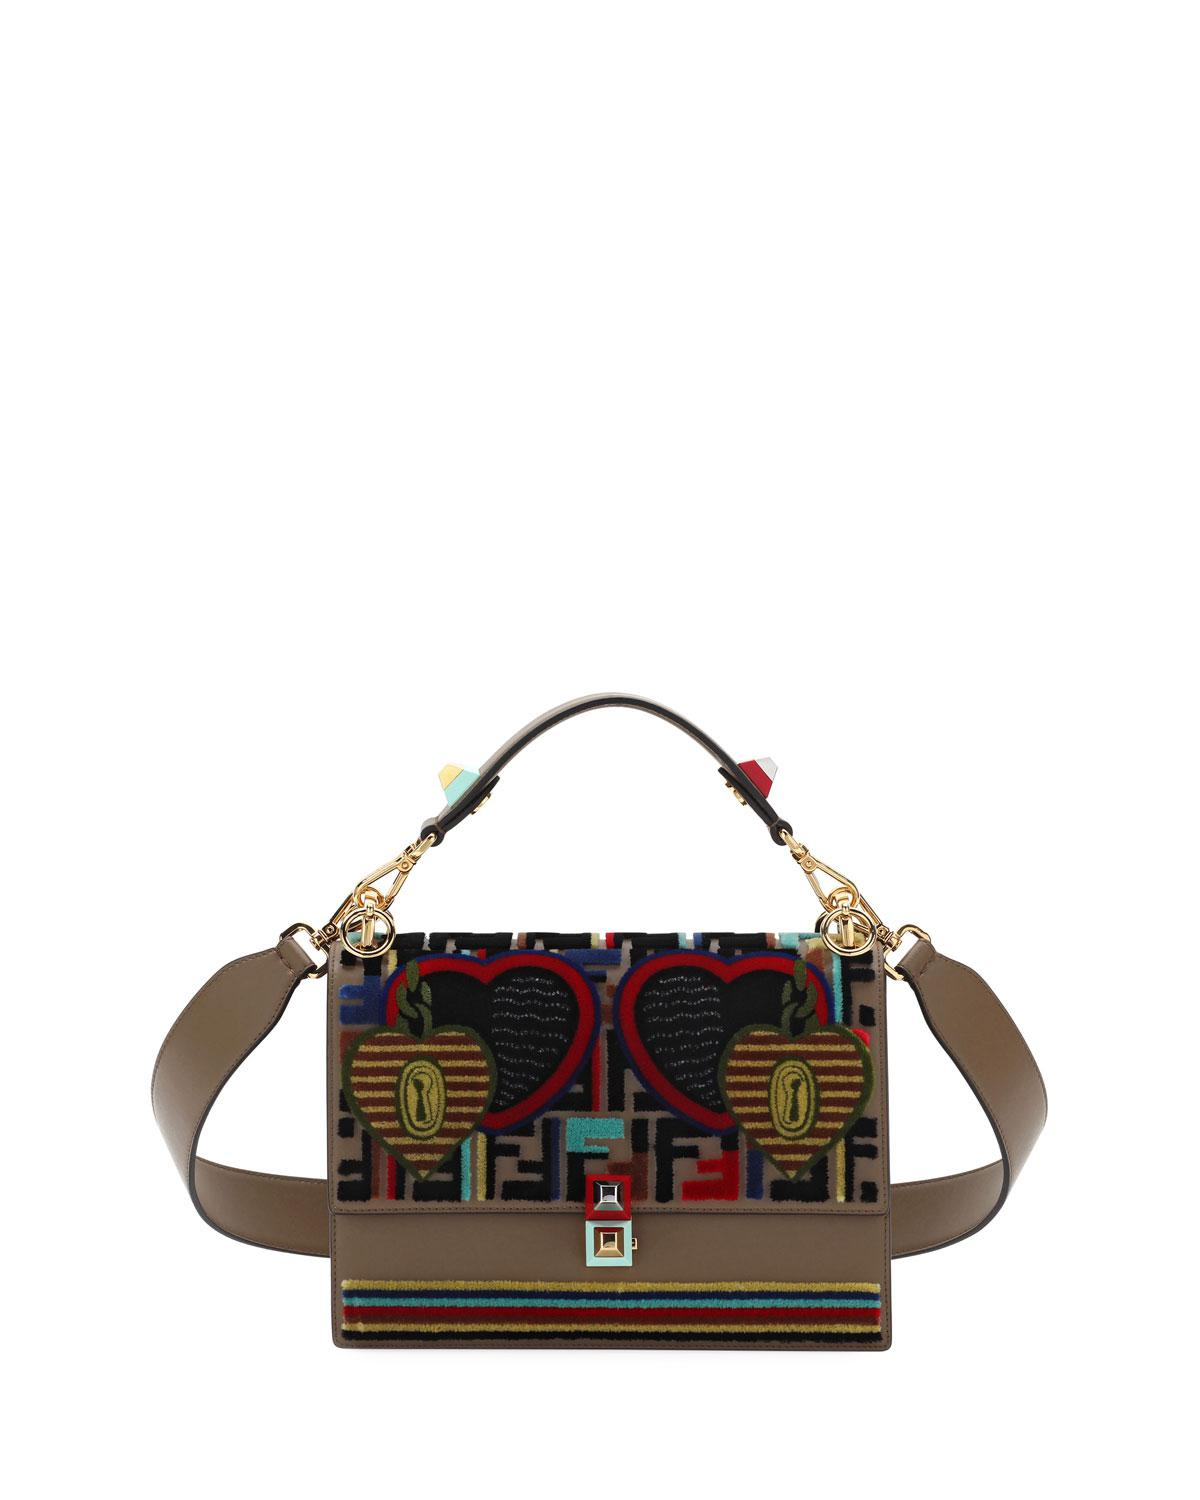 a7d4fc6d61e3 Fendi Embroidery Tappetino Kan I Shoulder Bag in Brown - Lyst